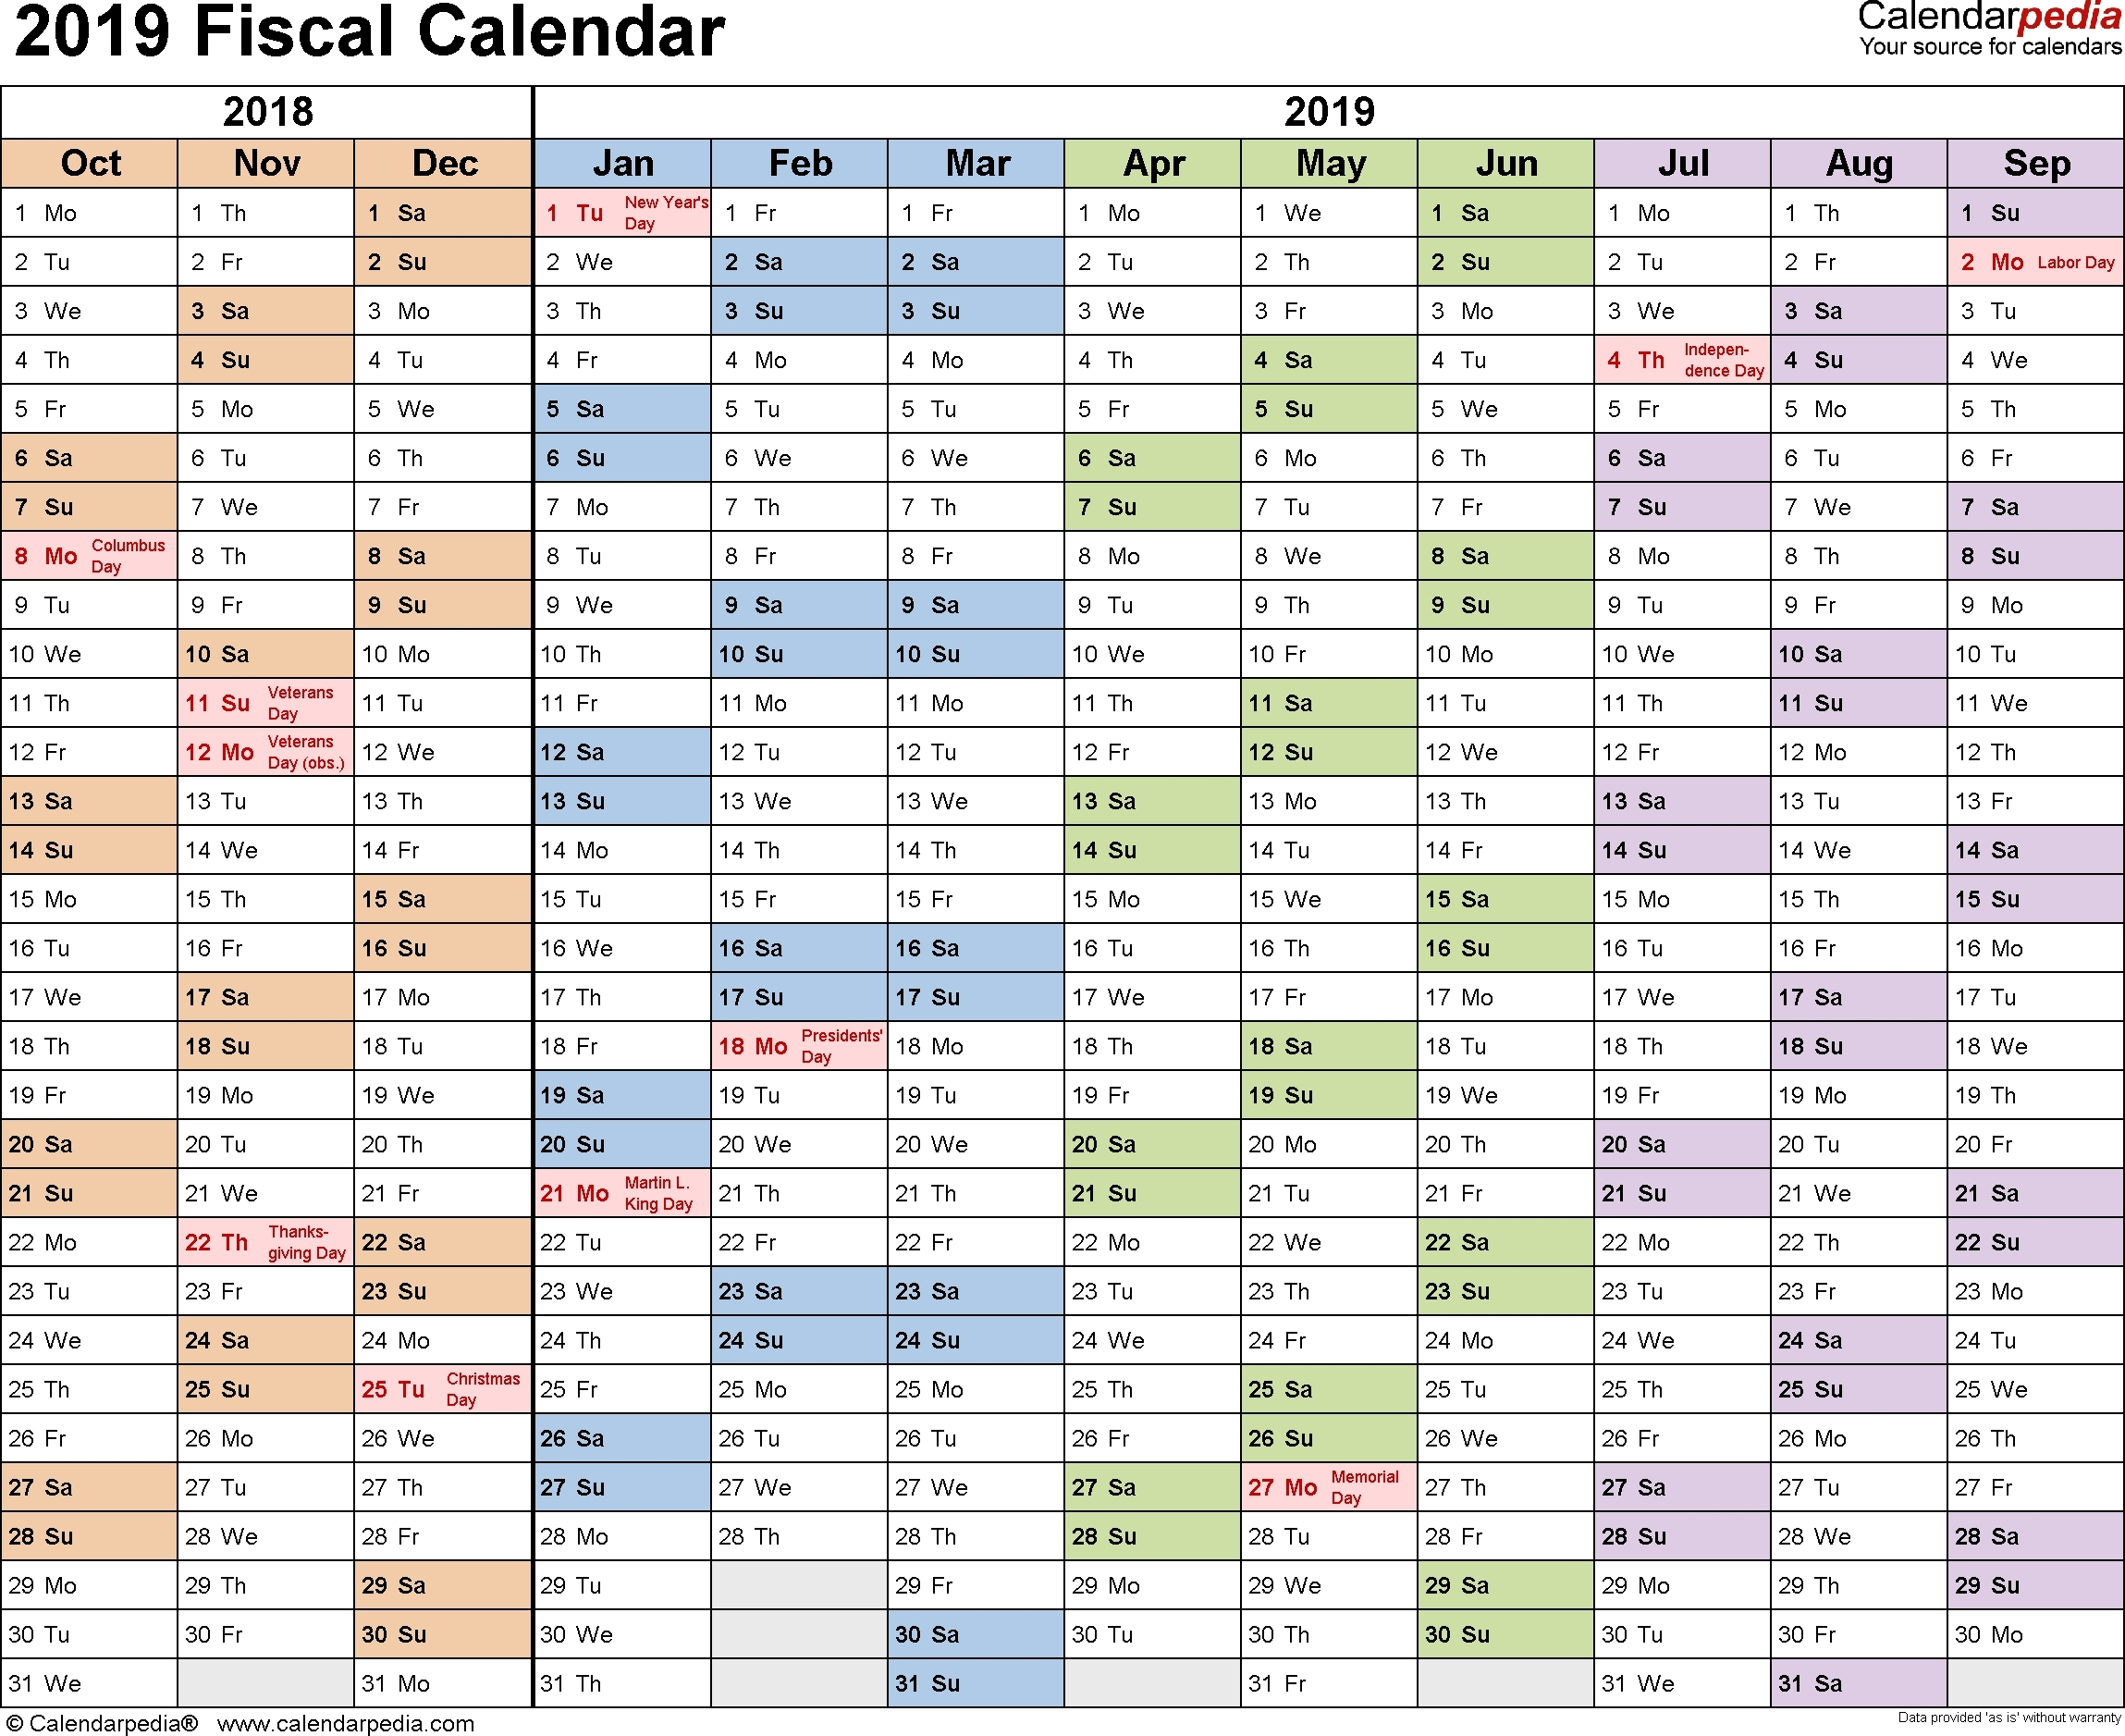 Catch What Week Of The Financial Year Are We In